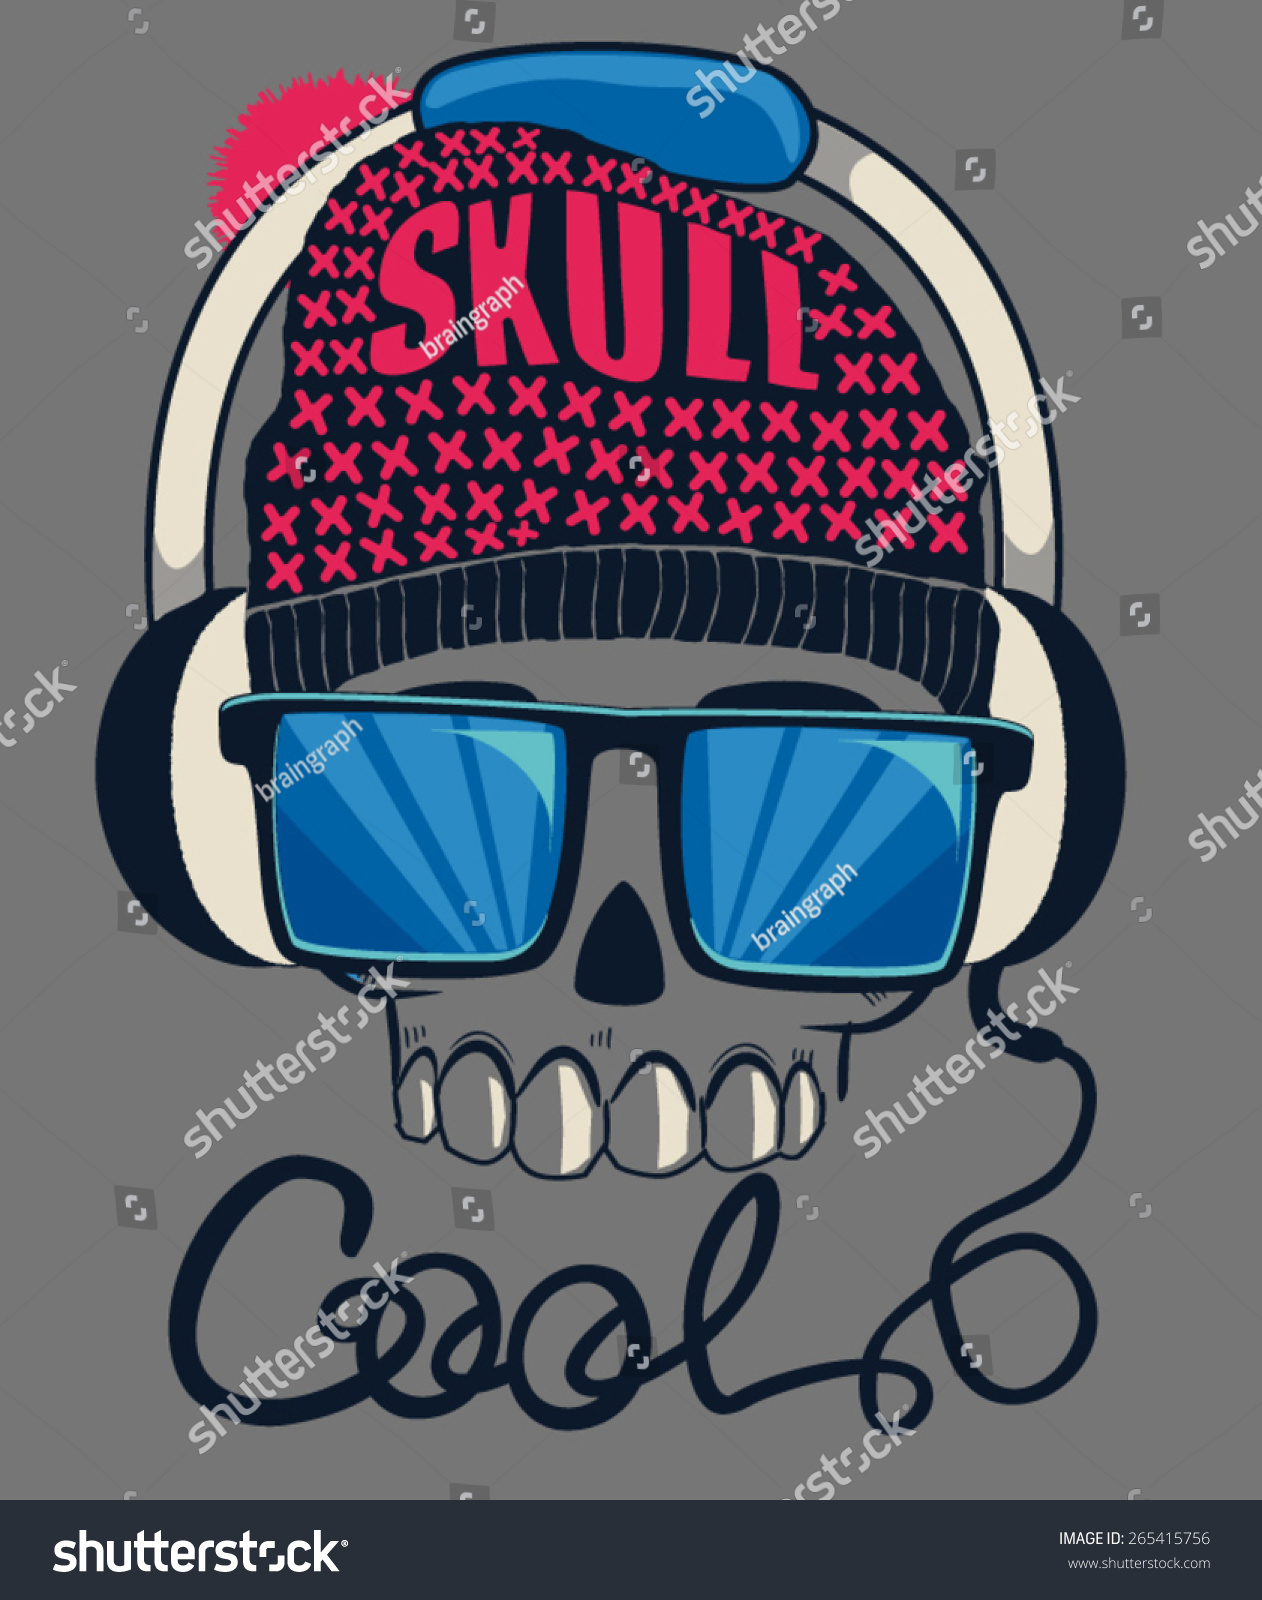 Cool Skull Design Tee Stock Vector 265415756 Shutterstock